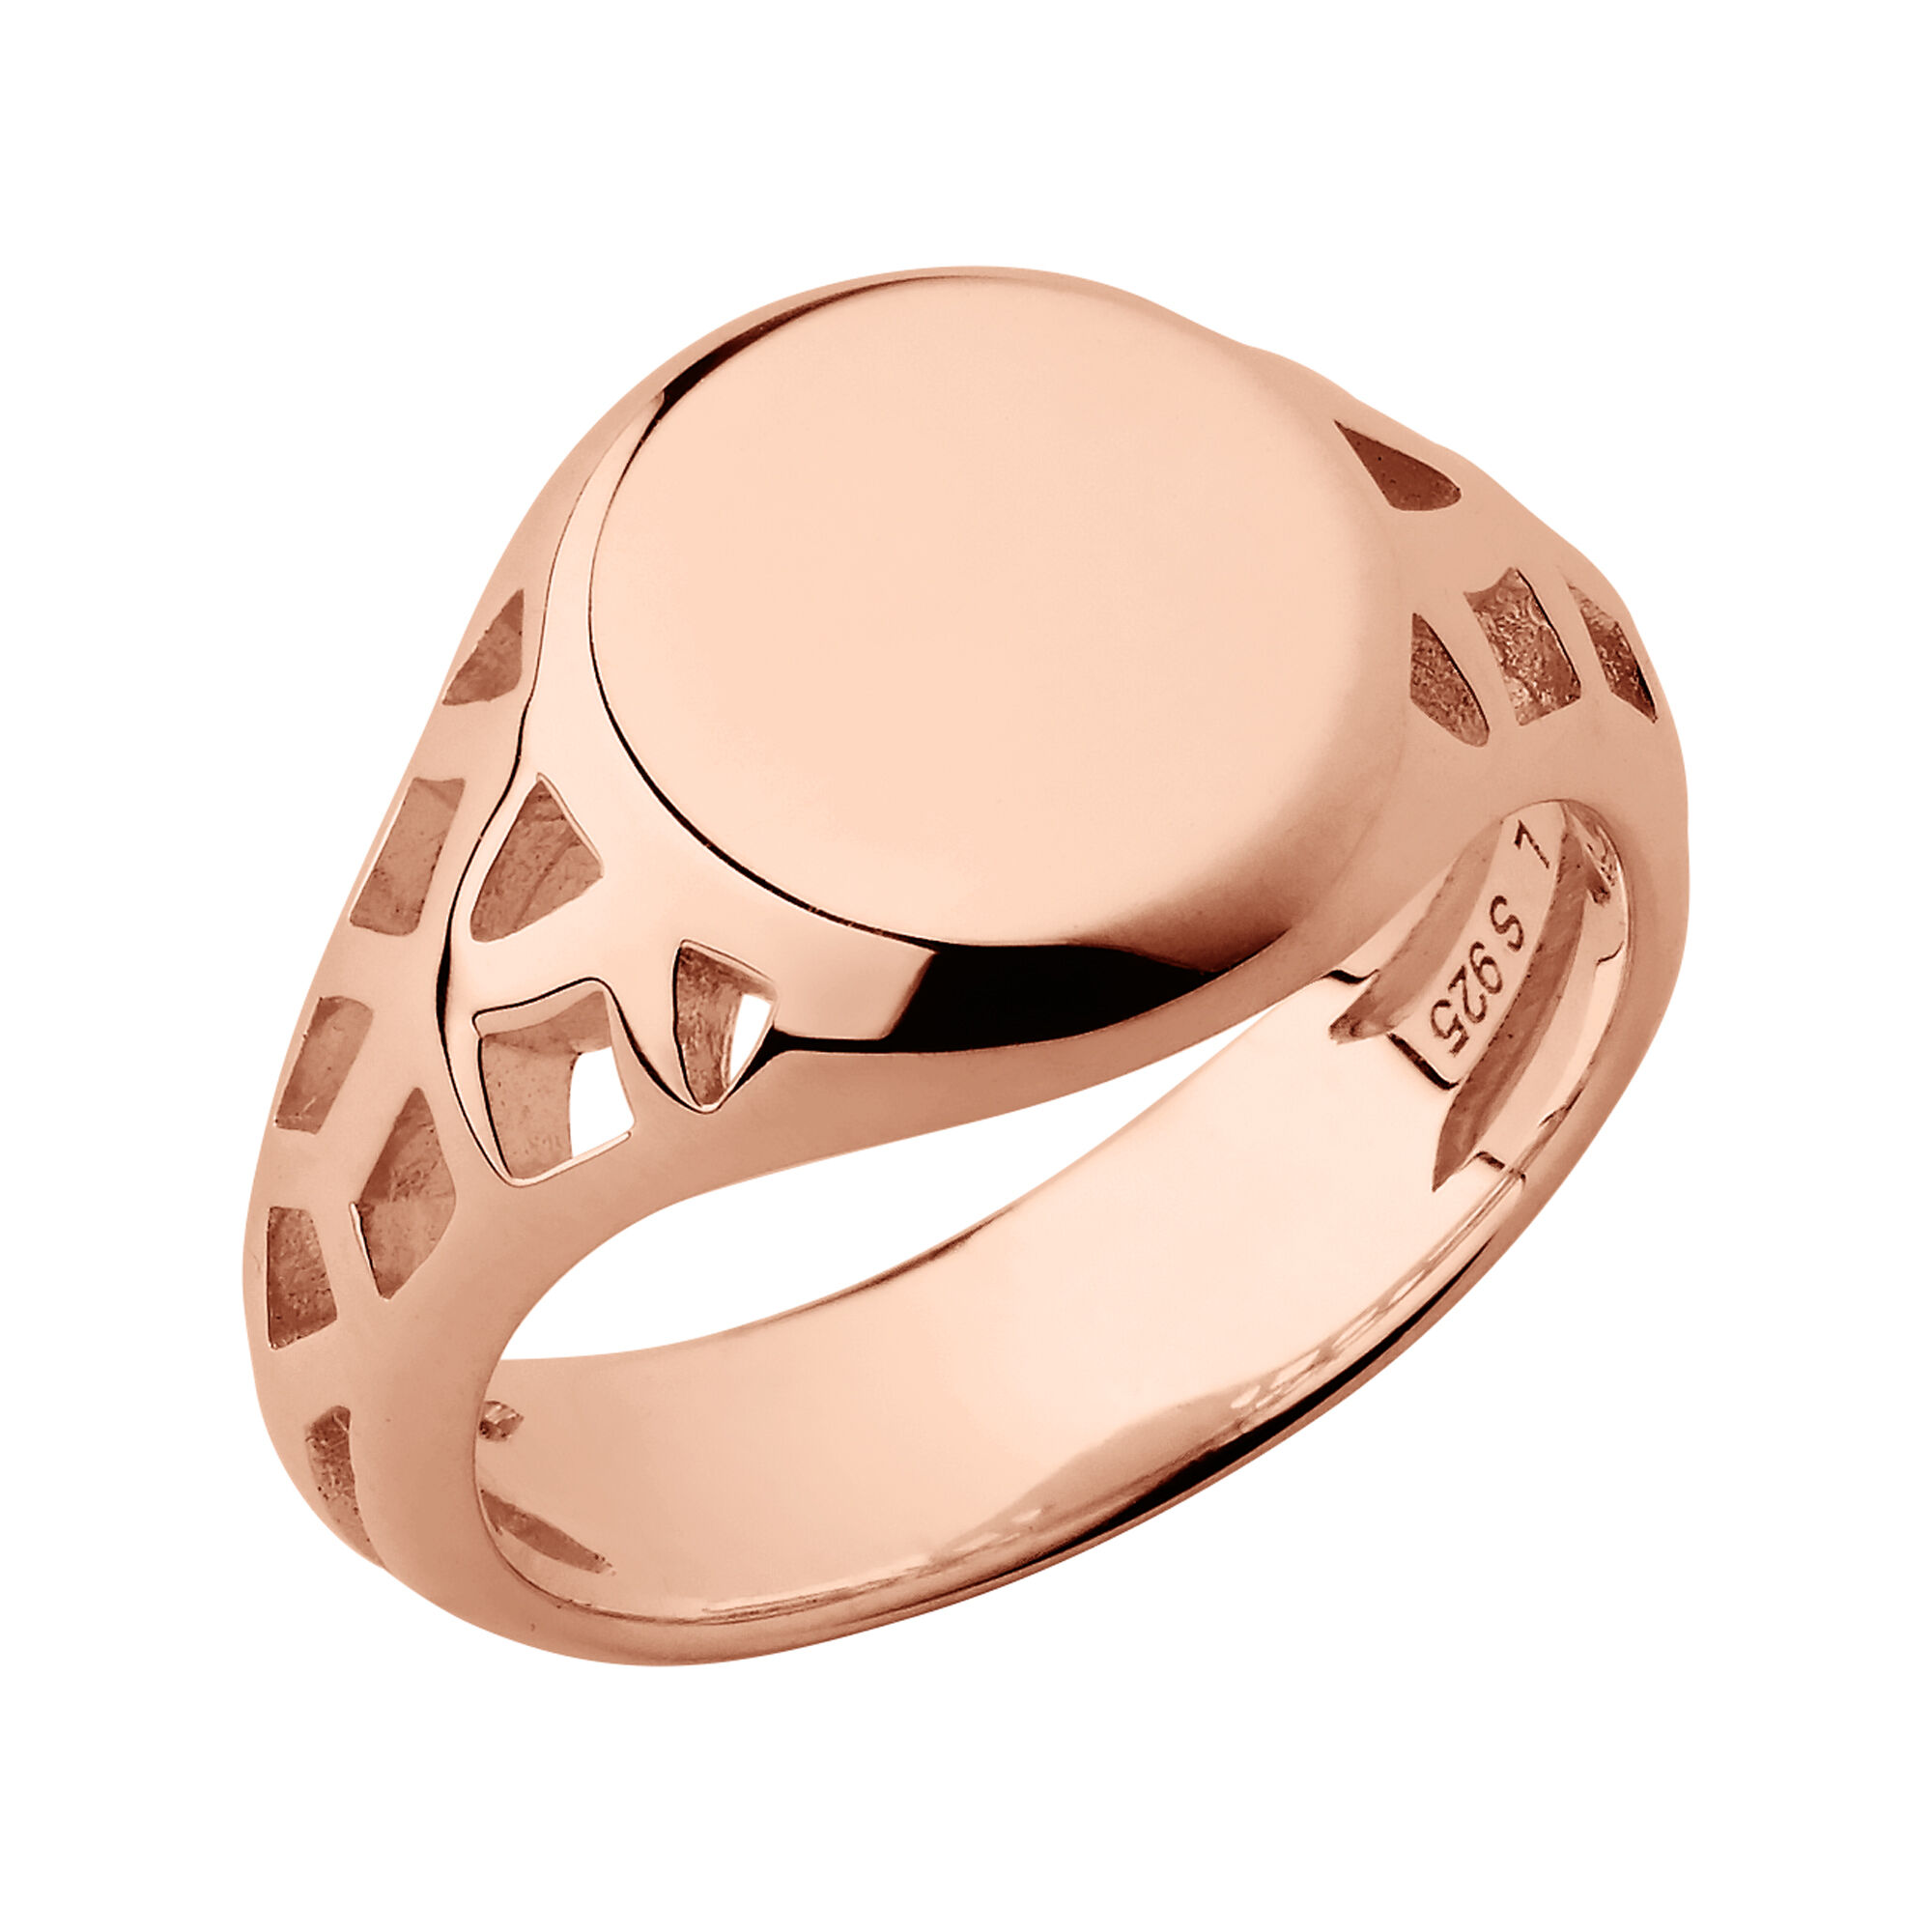 gold shakti loki what rings lokinoths ring the weddings wedding ethical difference engagement vs man fairtrade is